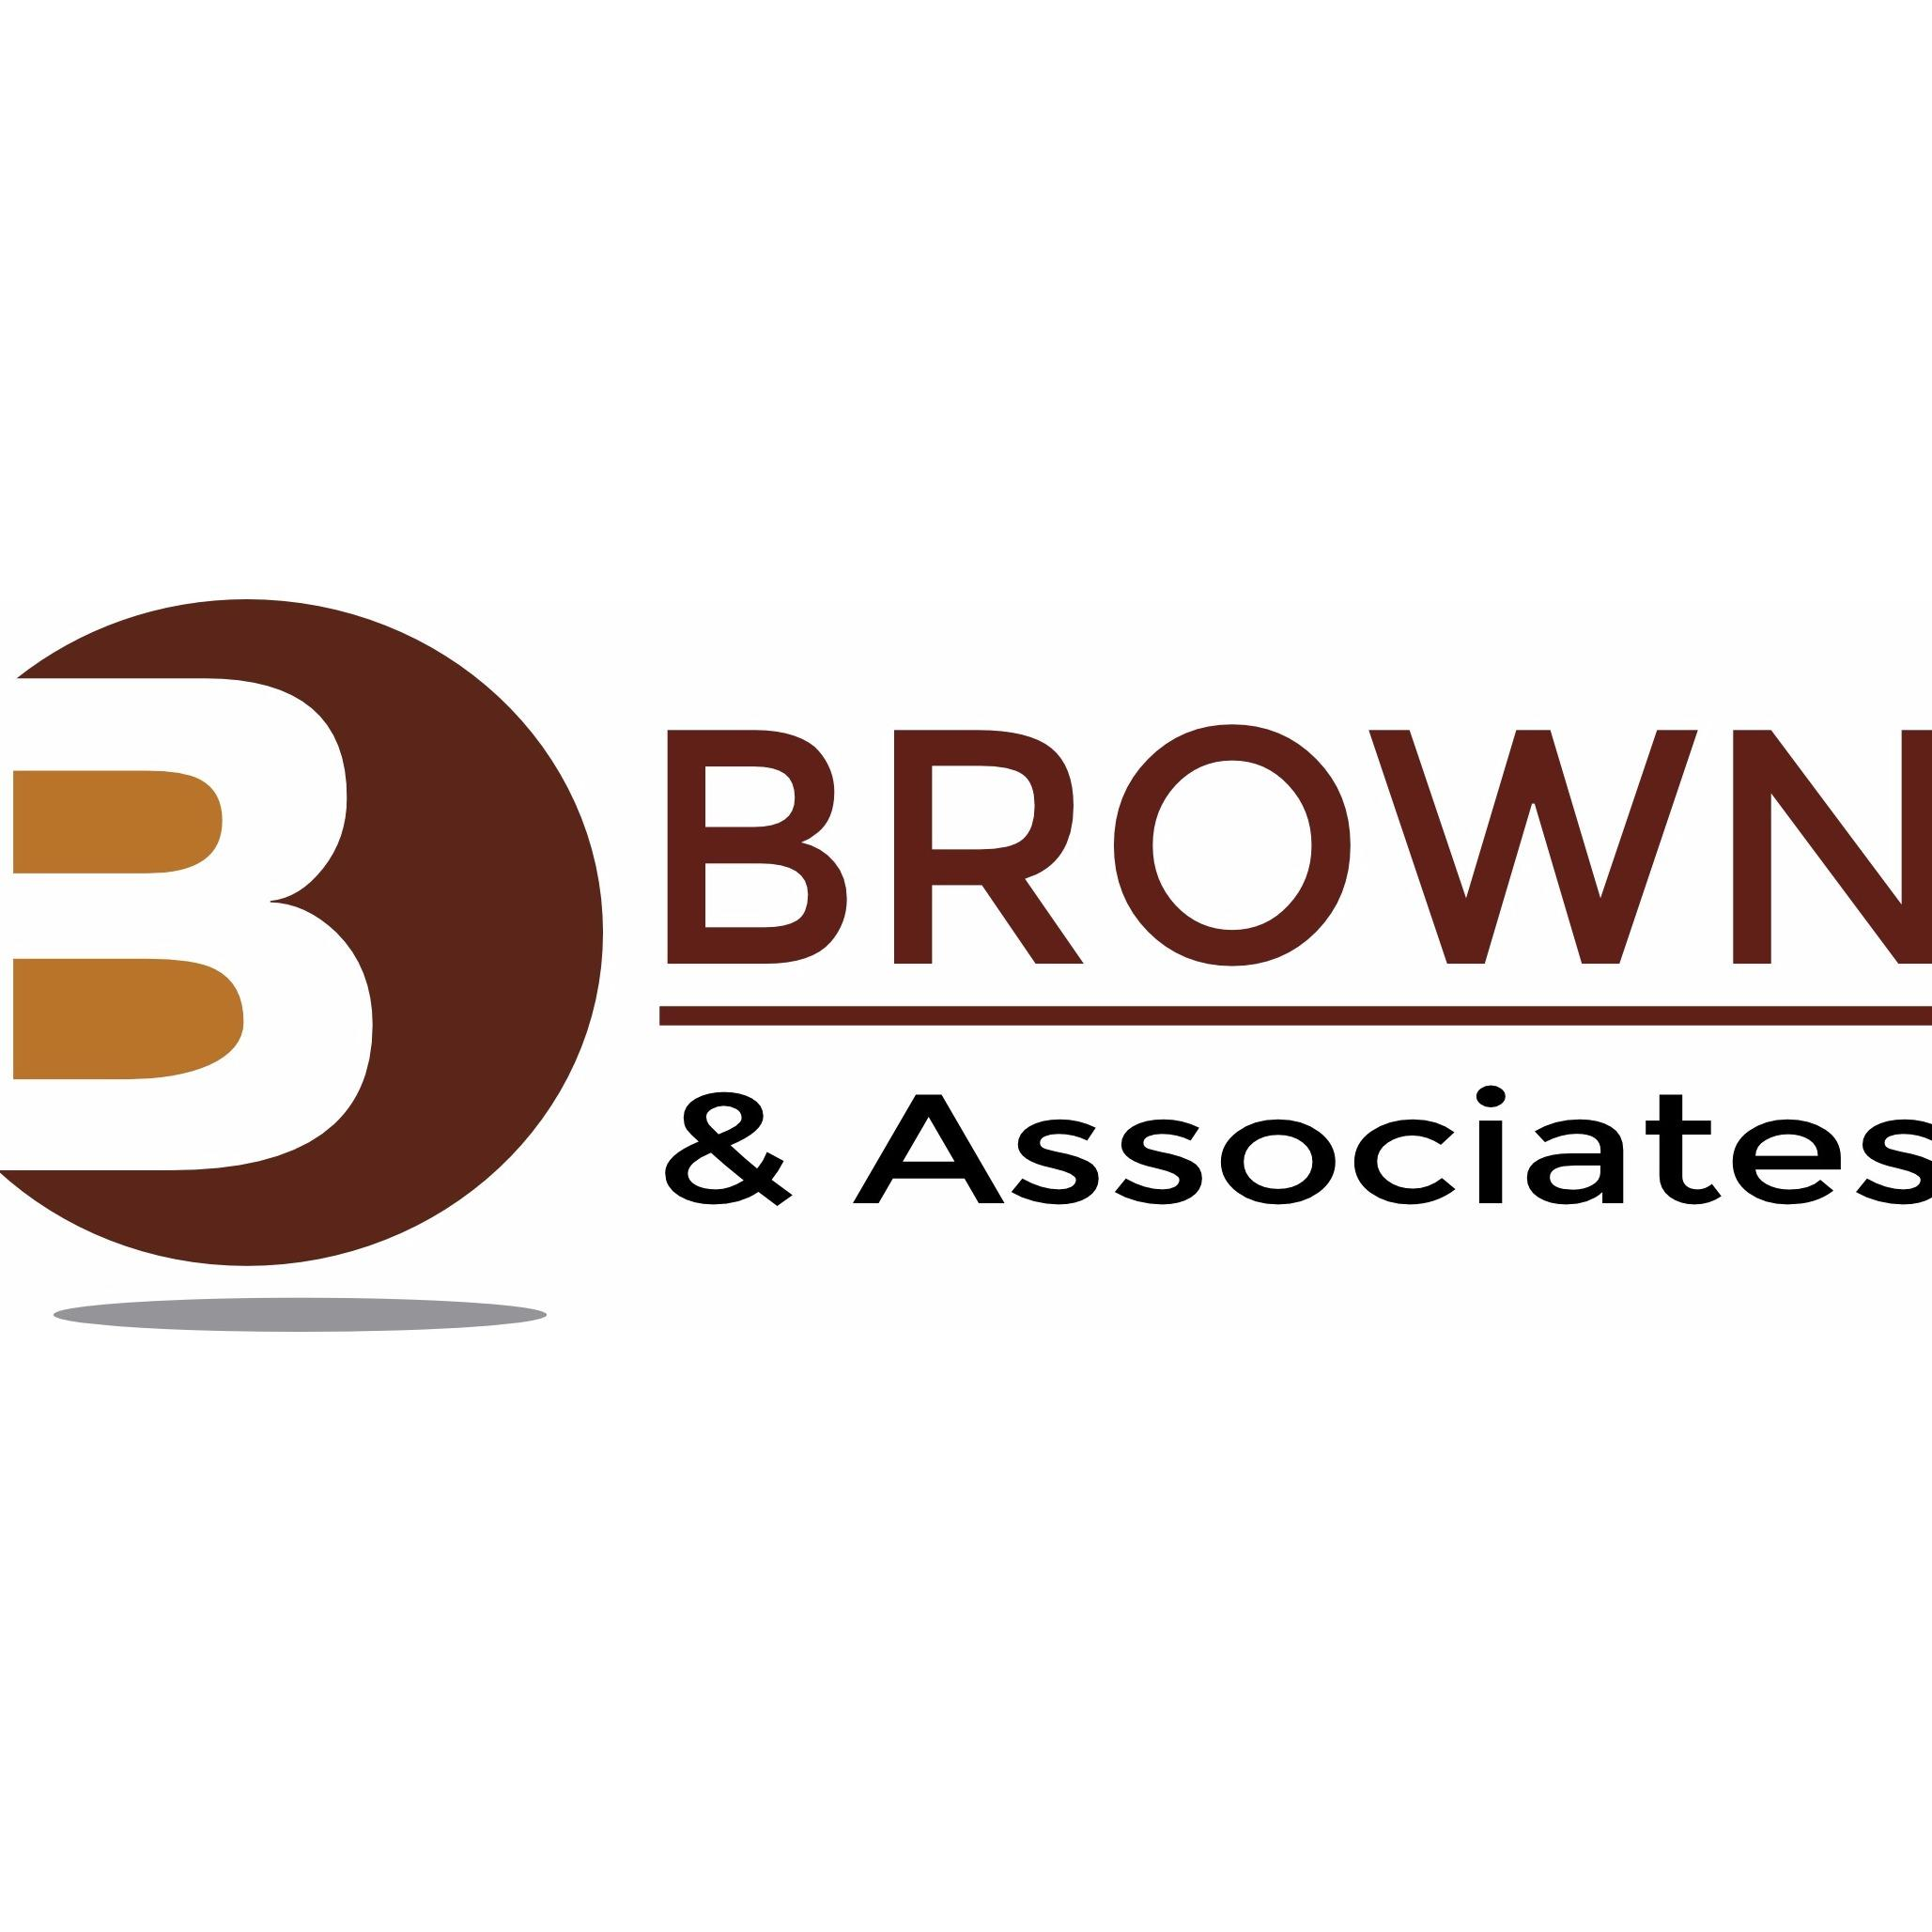 Brown & Associates Bookkeeping and Tax Preparation - Templeton, CA 93465 - (805)674-5810   ShowMeLocal.com